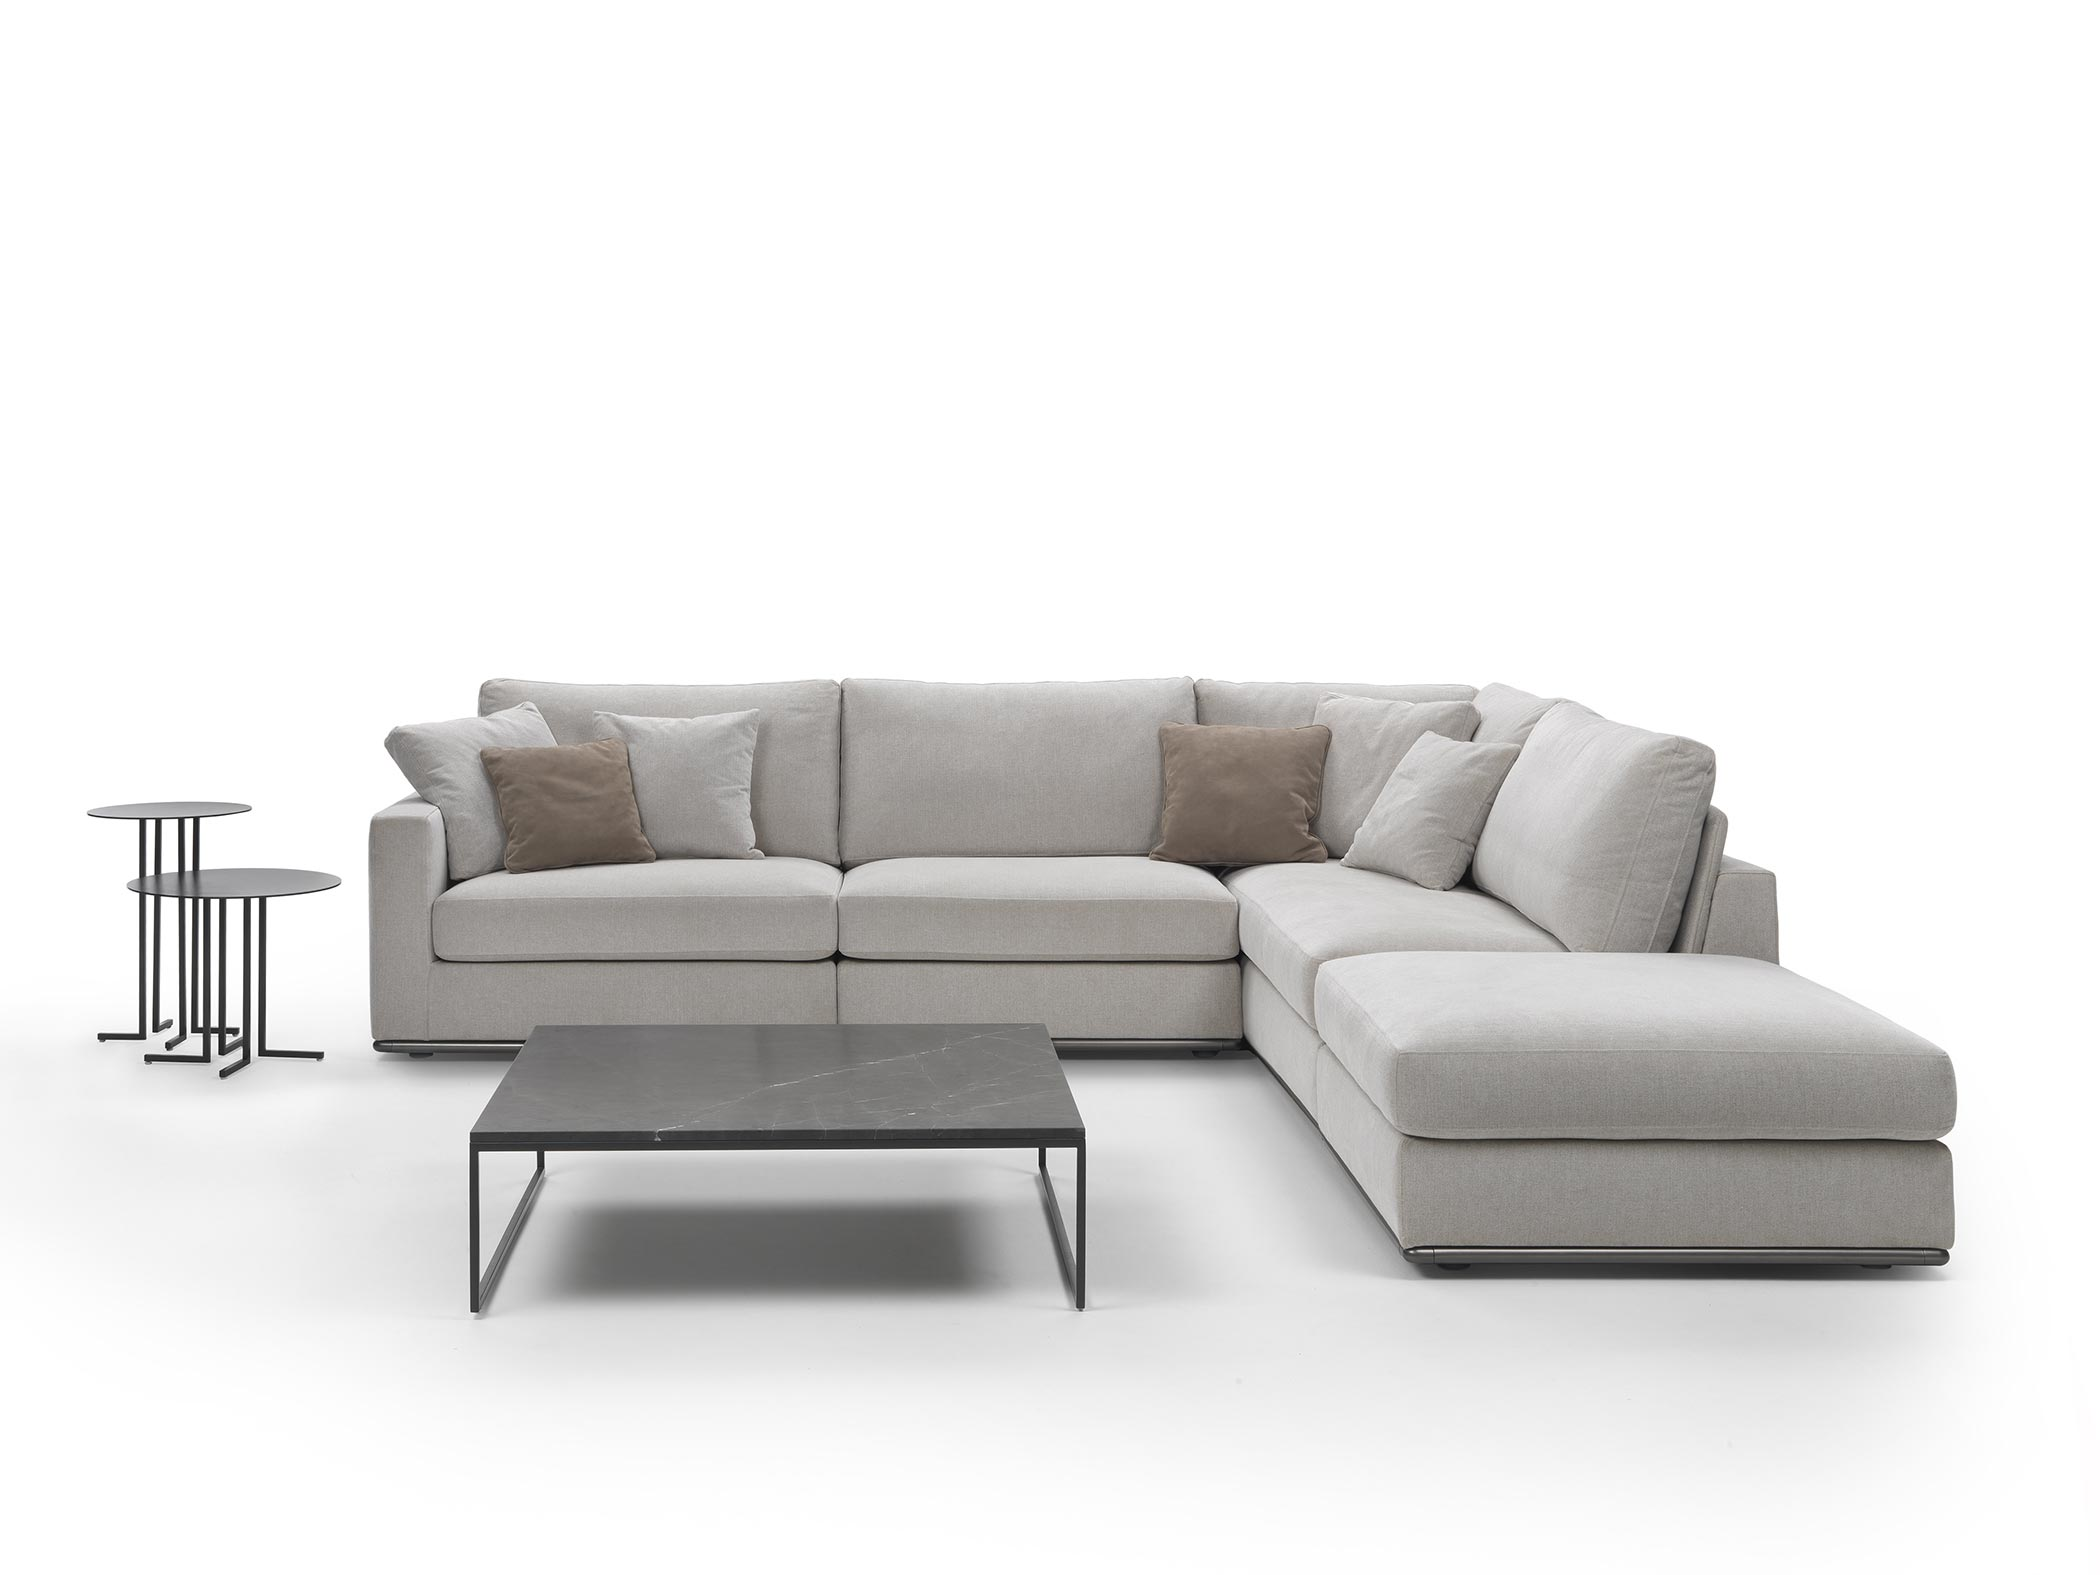 oliver sofa soft leather sofas uk gallery marelli living